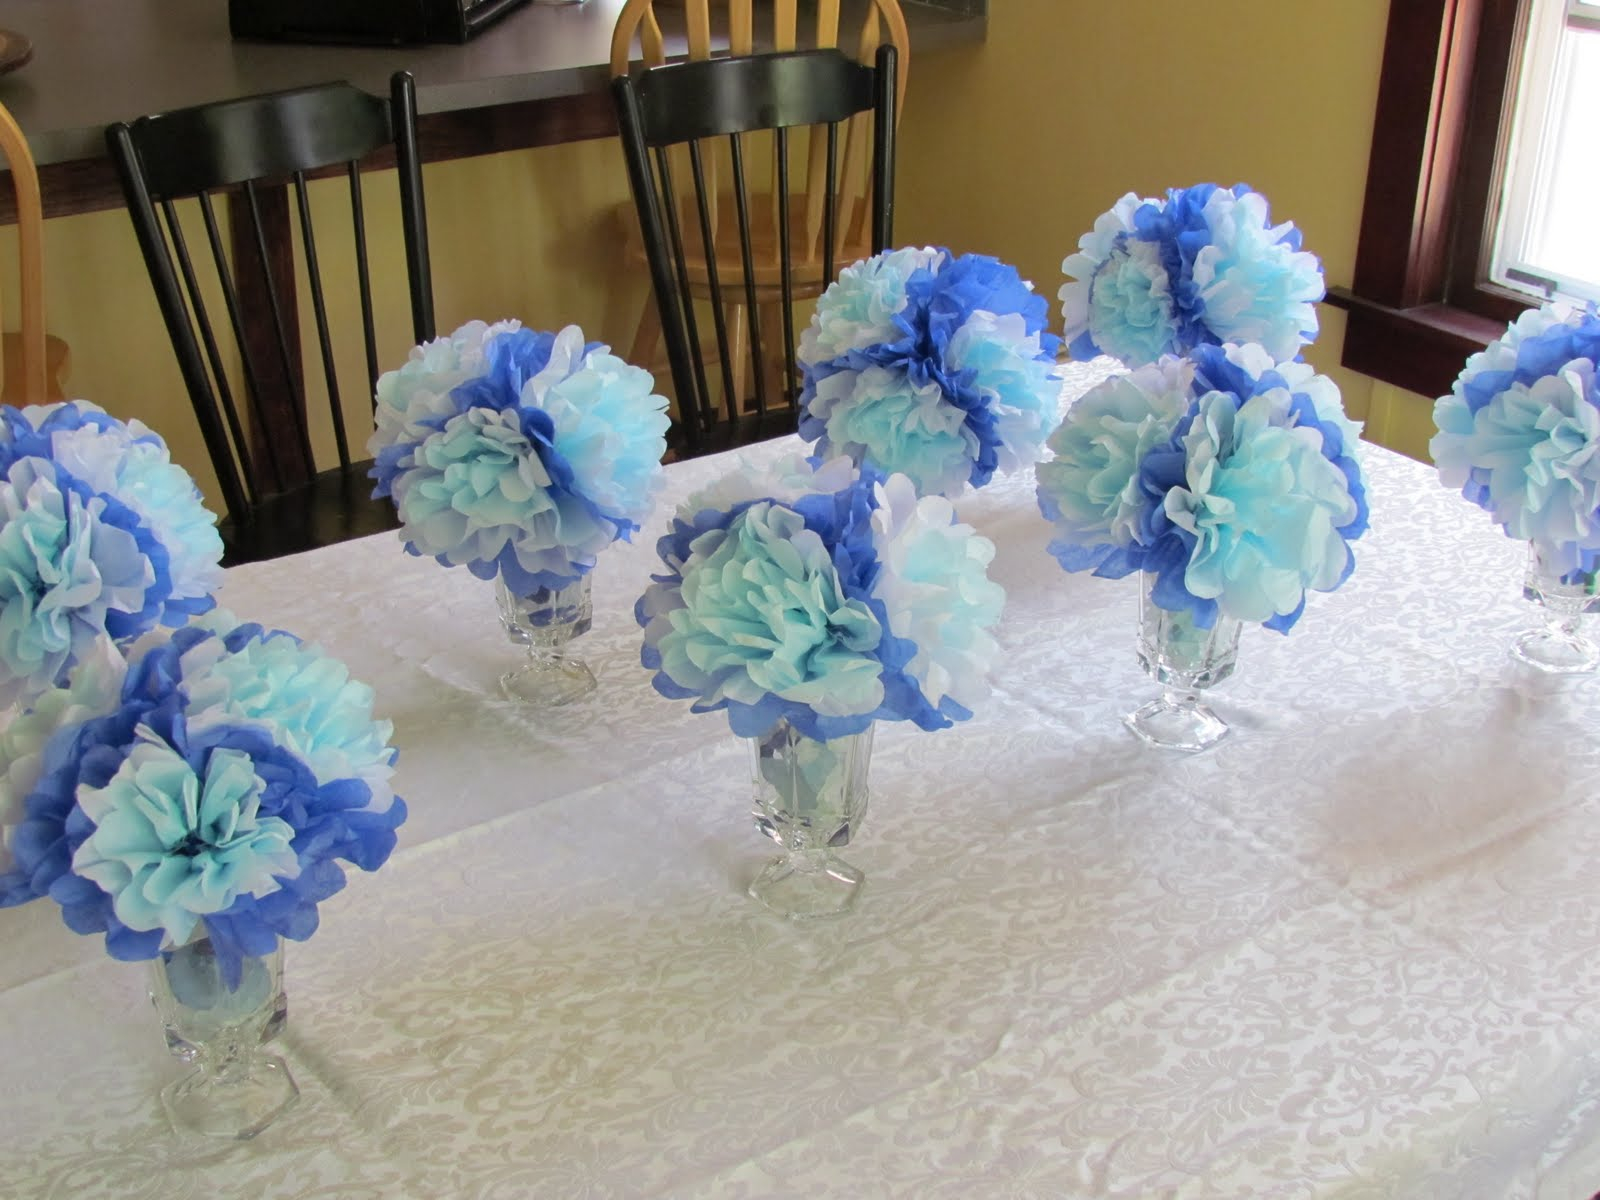 Modular Table Decorations For Baby Shower | Hospicehelpnow in Baby Shower Table Decorating Ideas